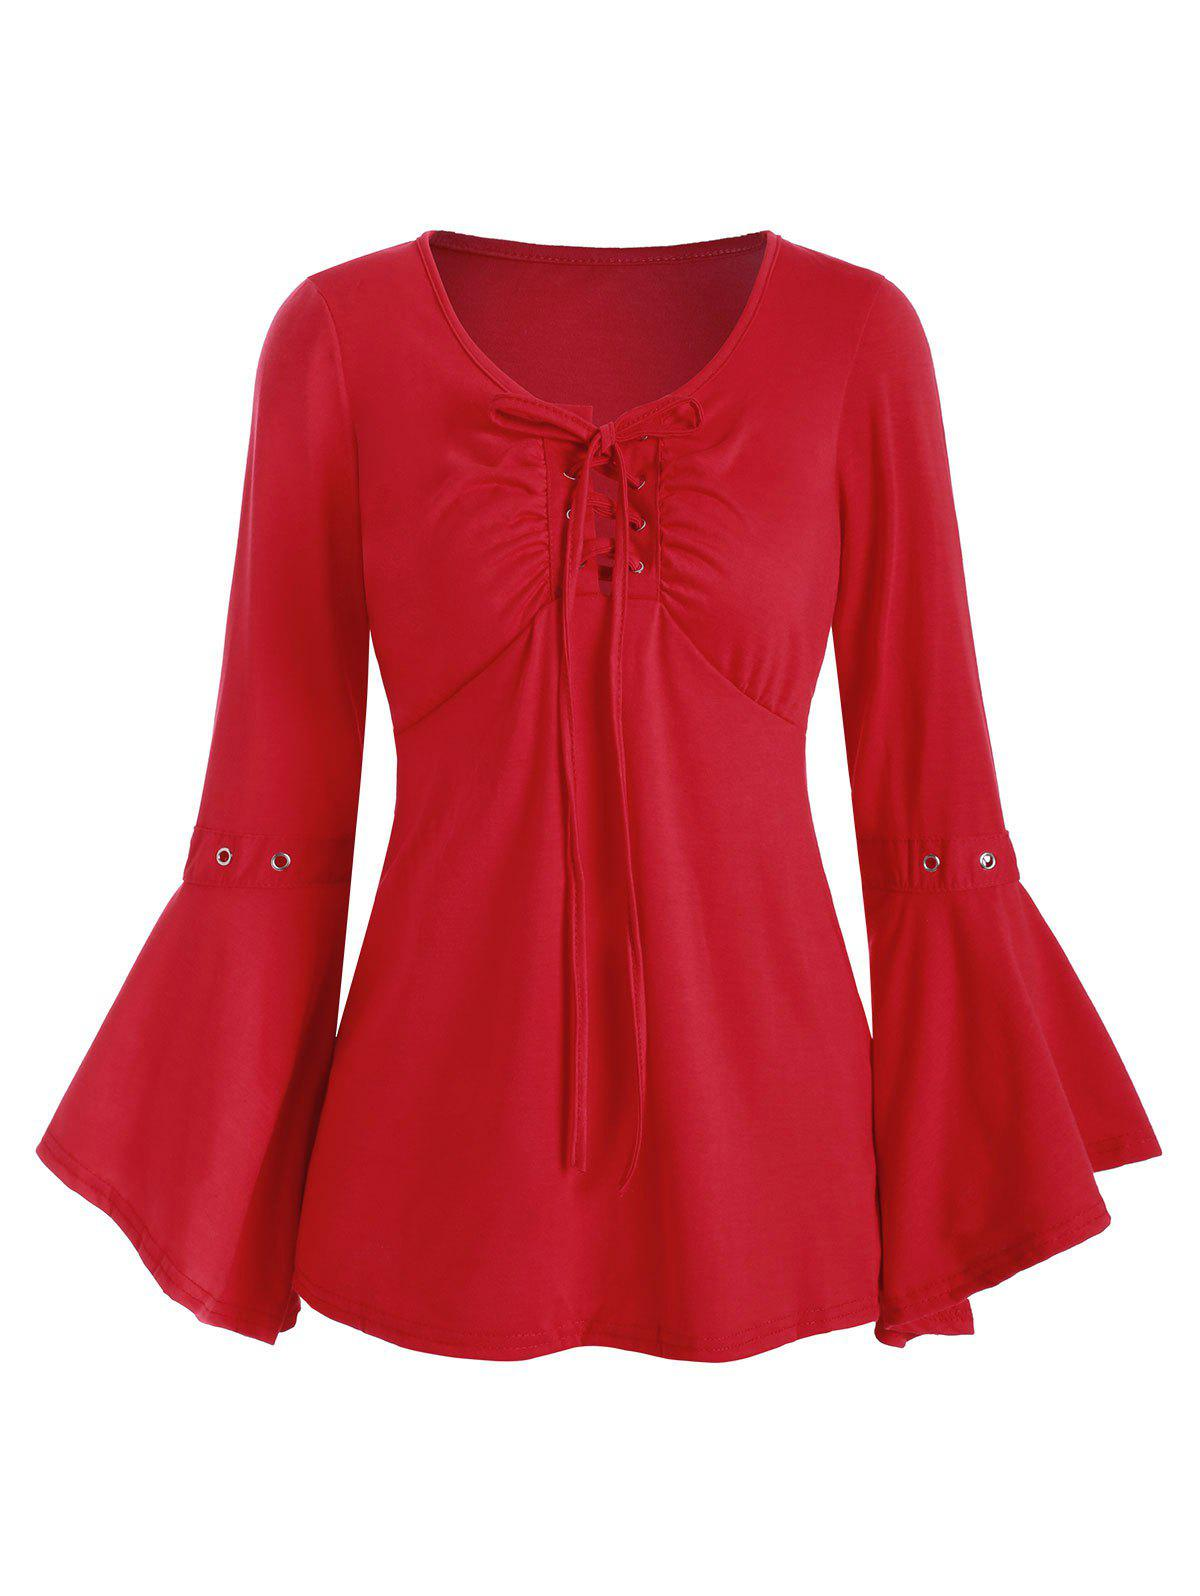 Grommet Long Sleeve Lace-up Top - RED XL